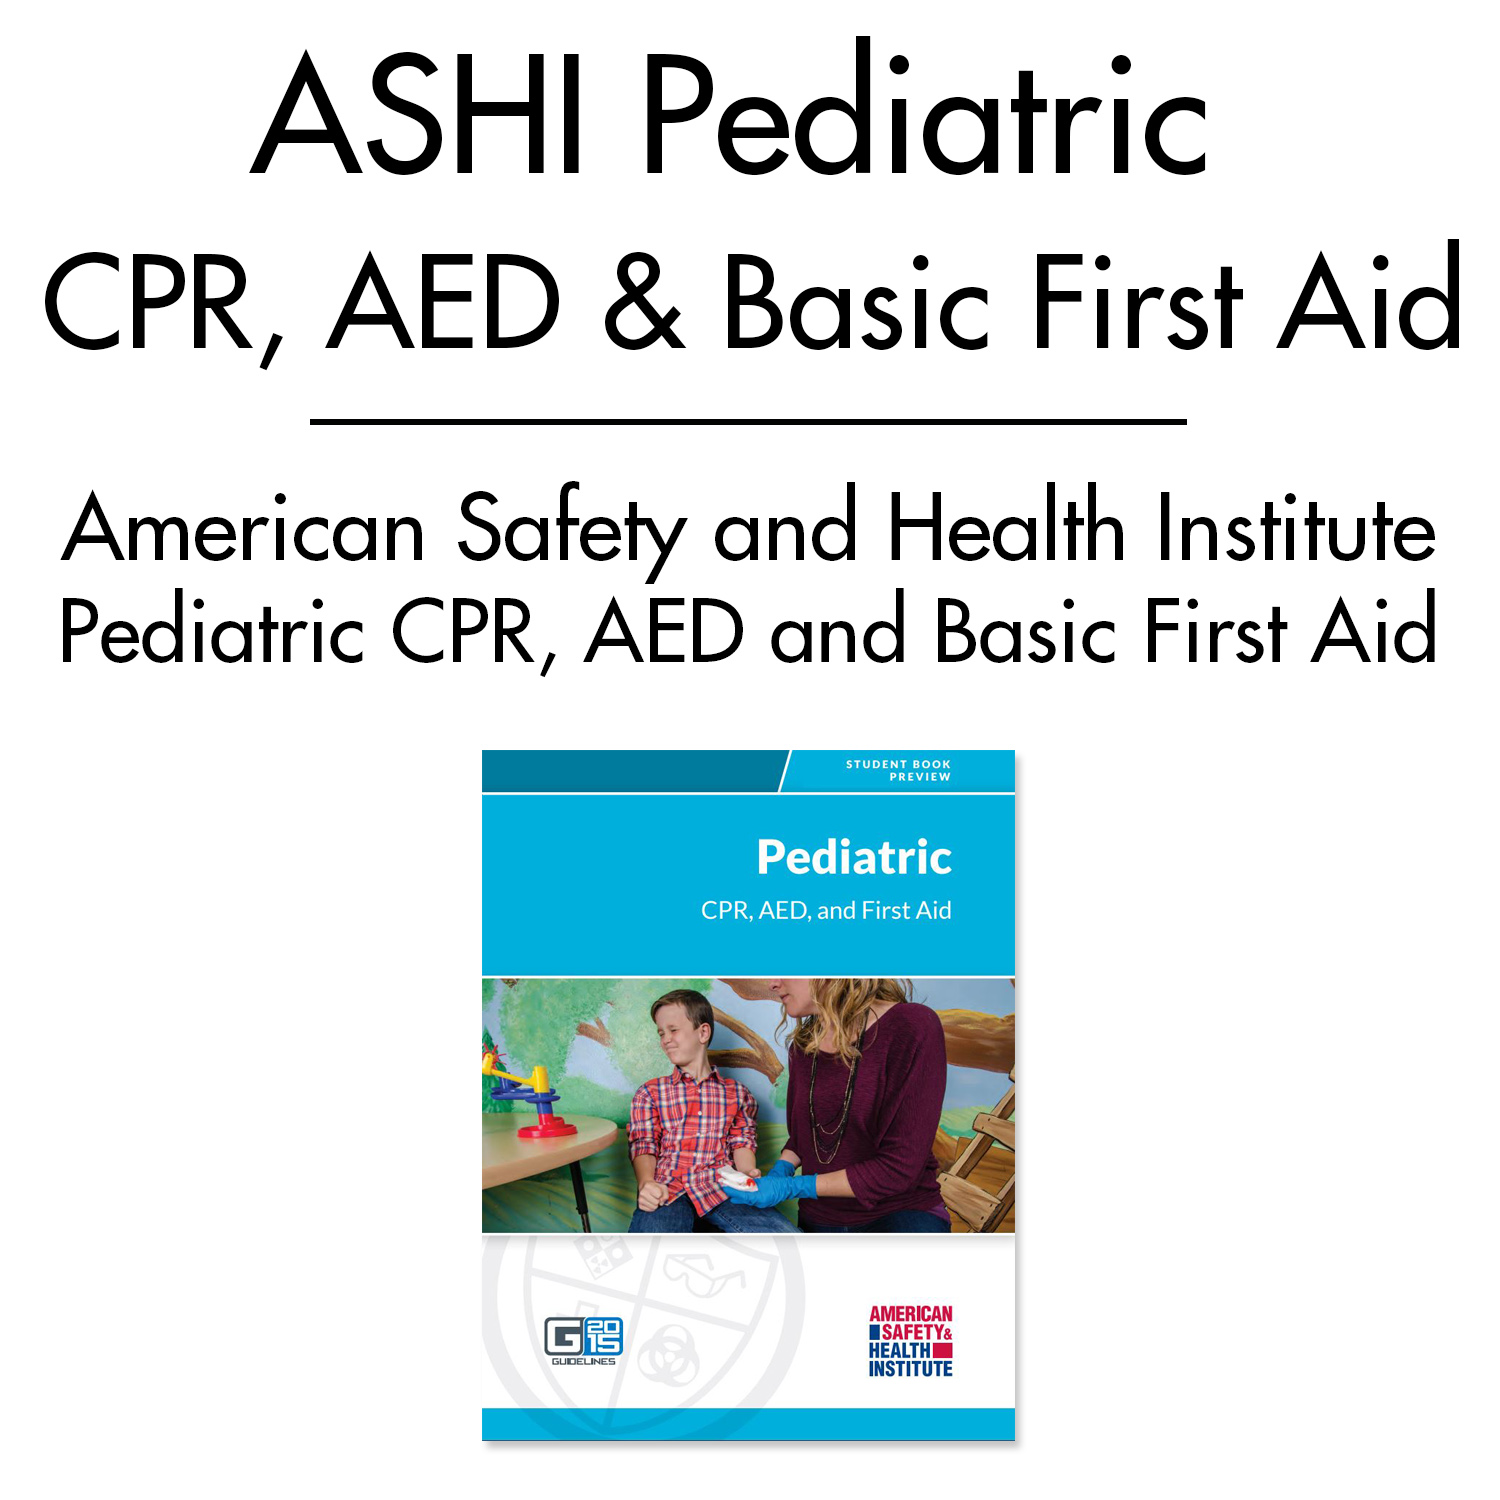 ASHI Pediatric CPR, AED and Basic First Aid